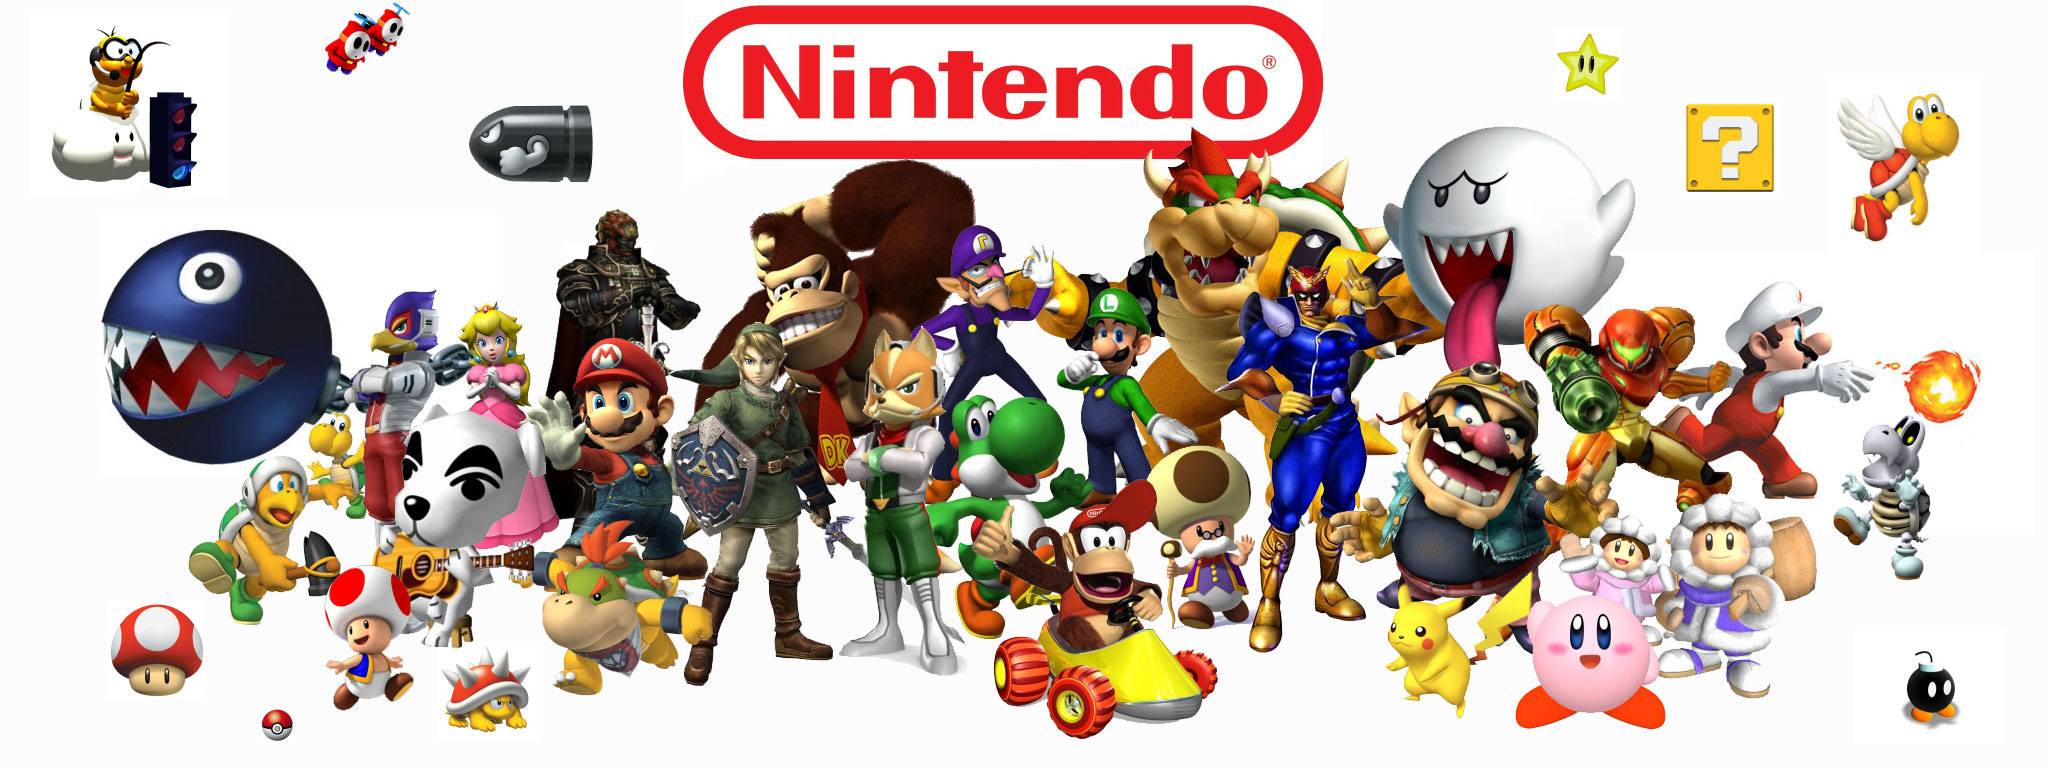 I chose this image because Waluigi is in it.